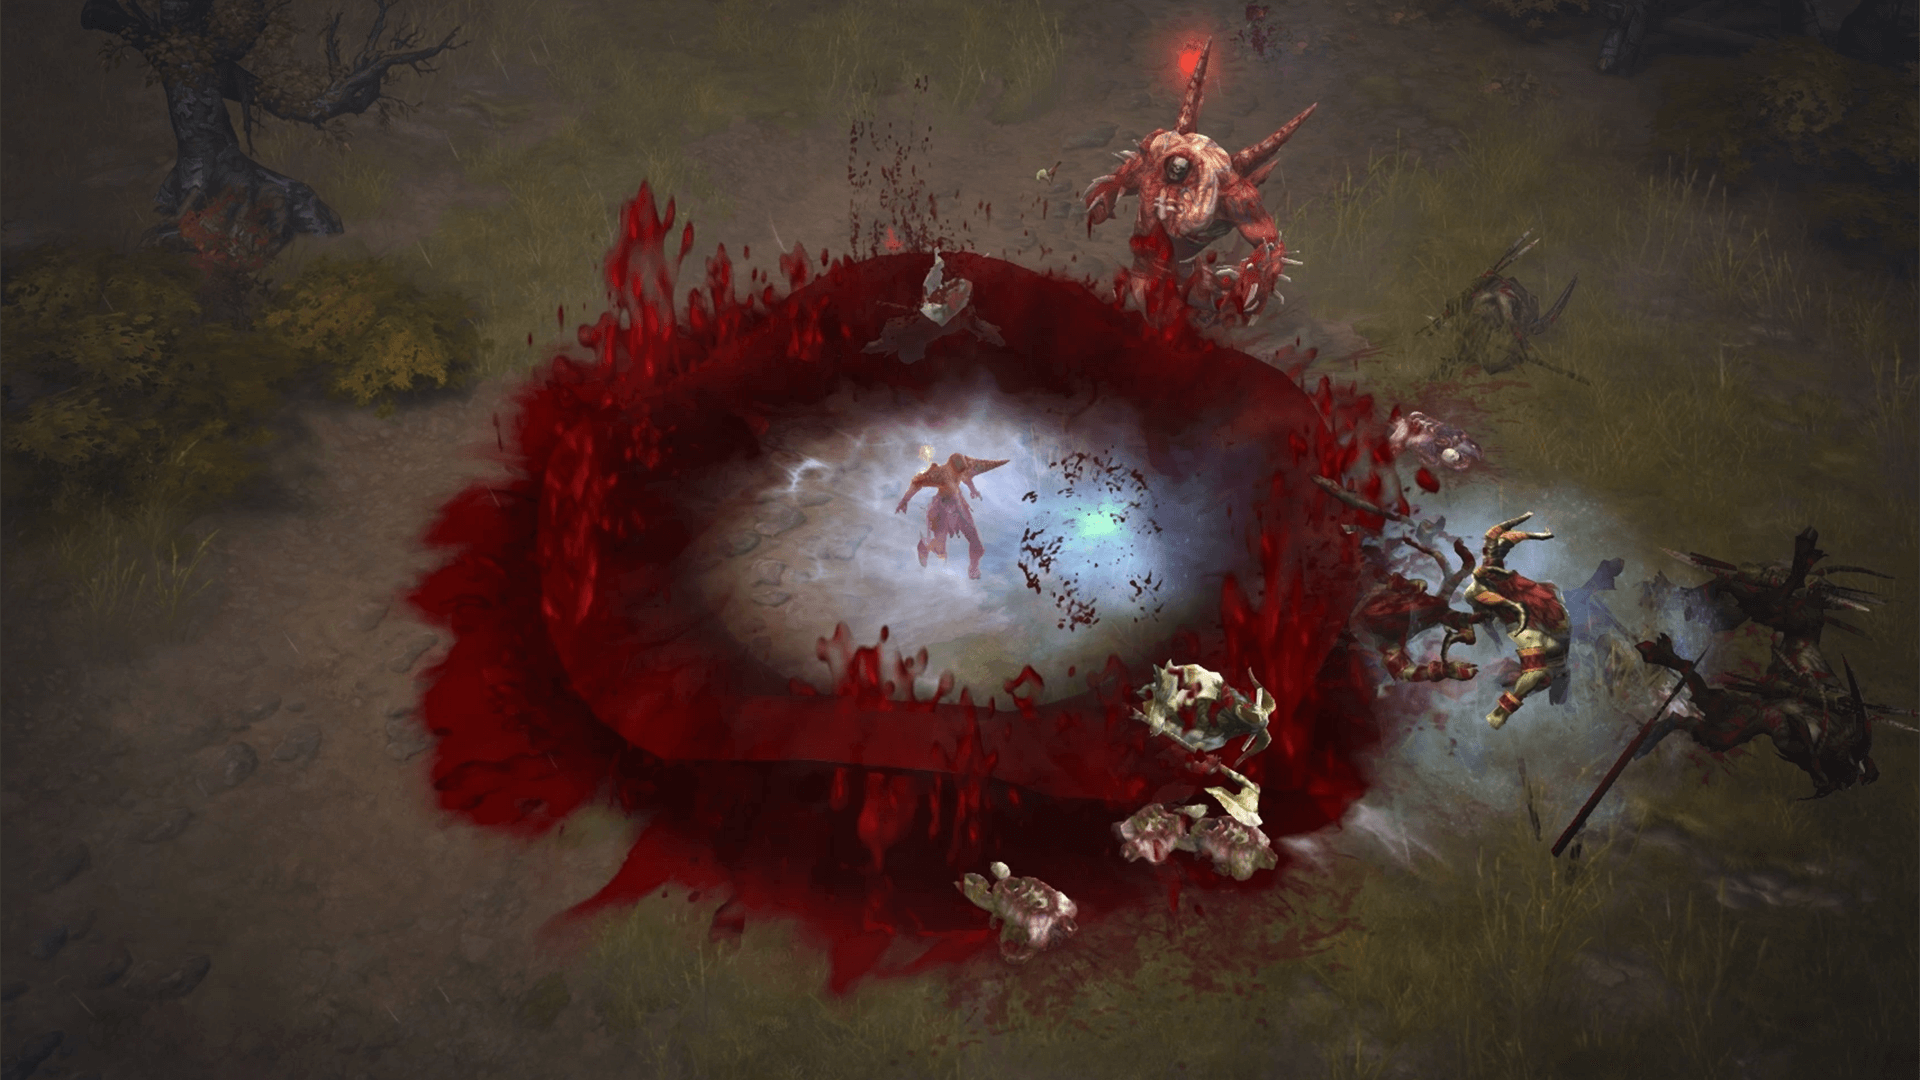 So much blood, courtesy of the Diablo III's Necromancer.